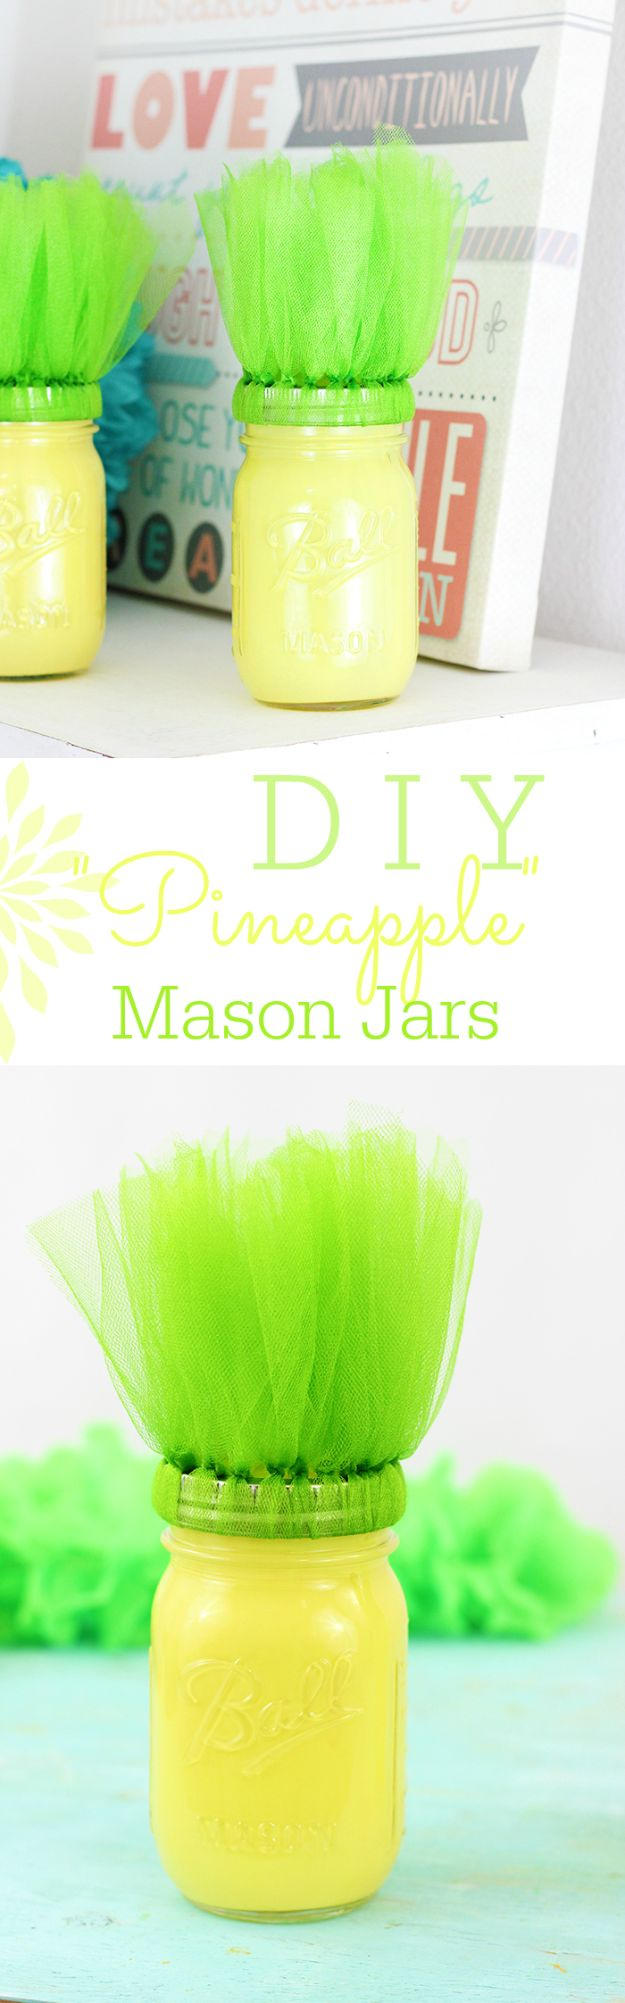 Pineapple Crafts - DIY Pineapple Mason Jars - Cute Craft Projects That Cool DIY Gifts - Wall Decor, Bedroom Art, Jewelry Idea